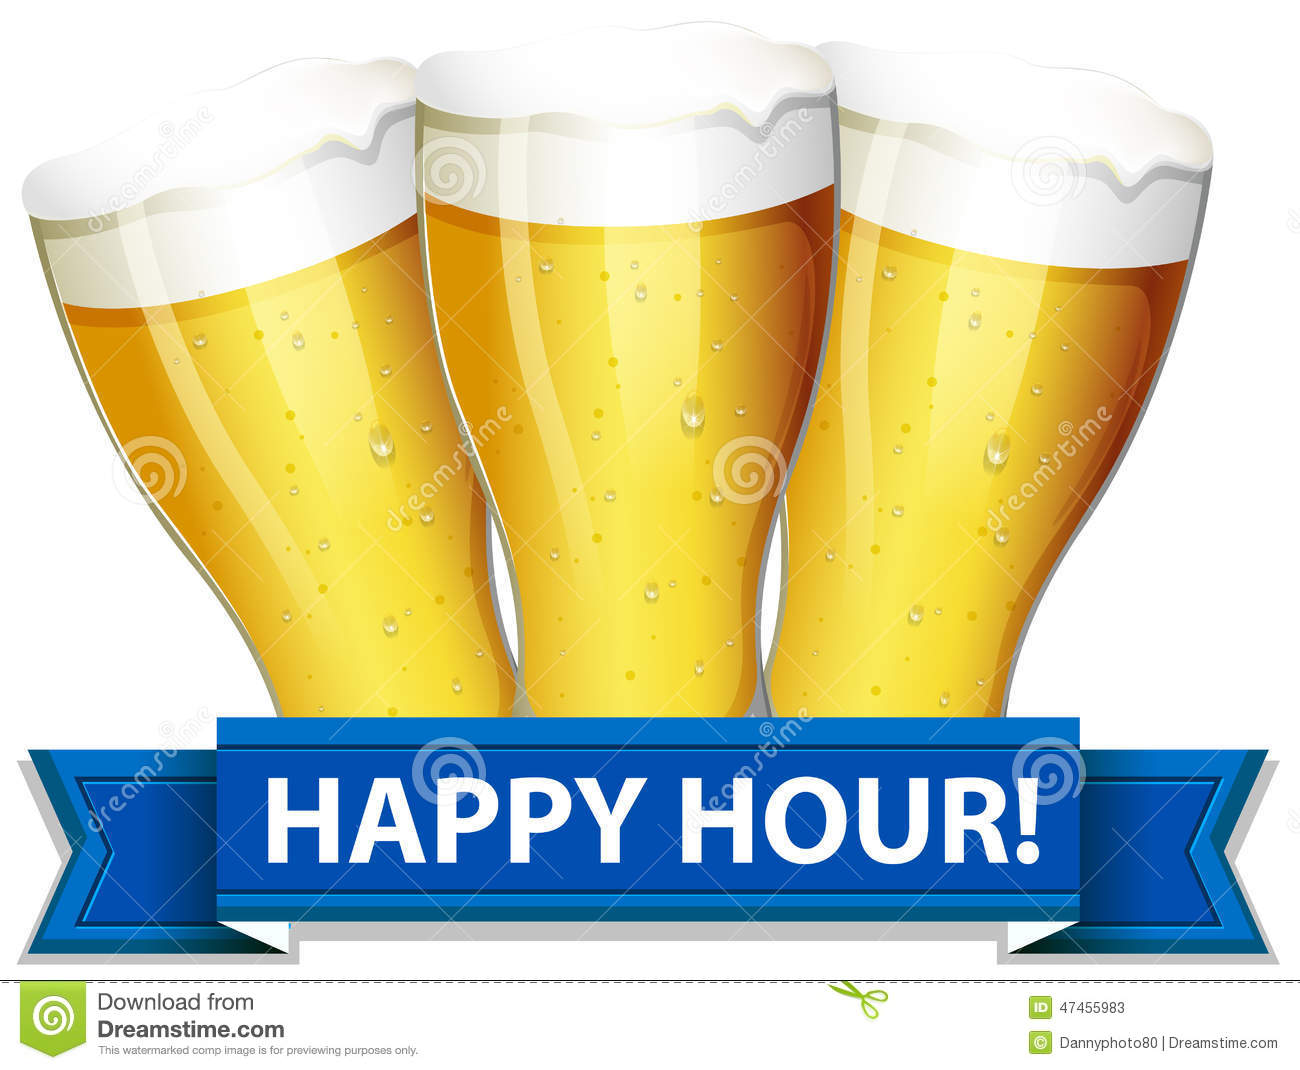 happy hour template with glasses of beers on a white background.